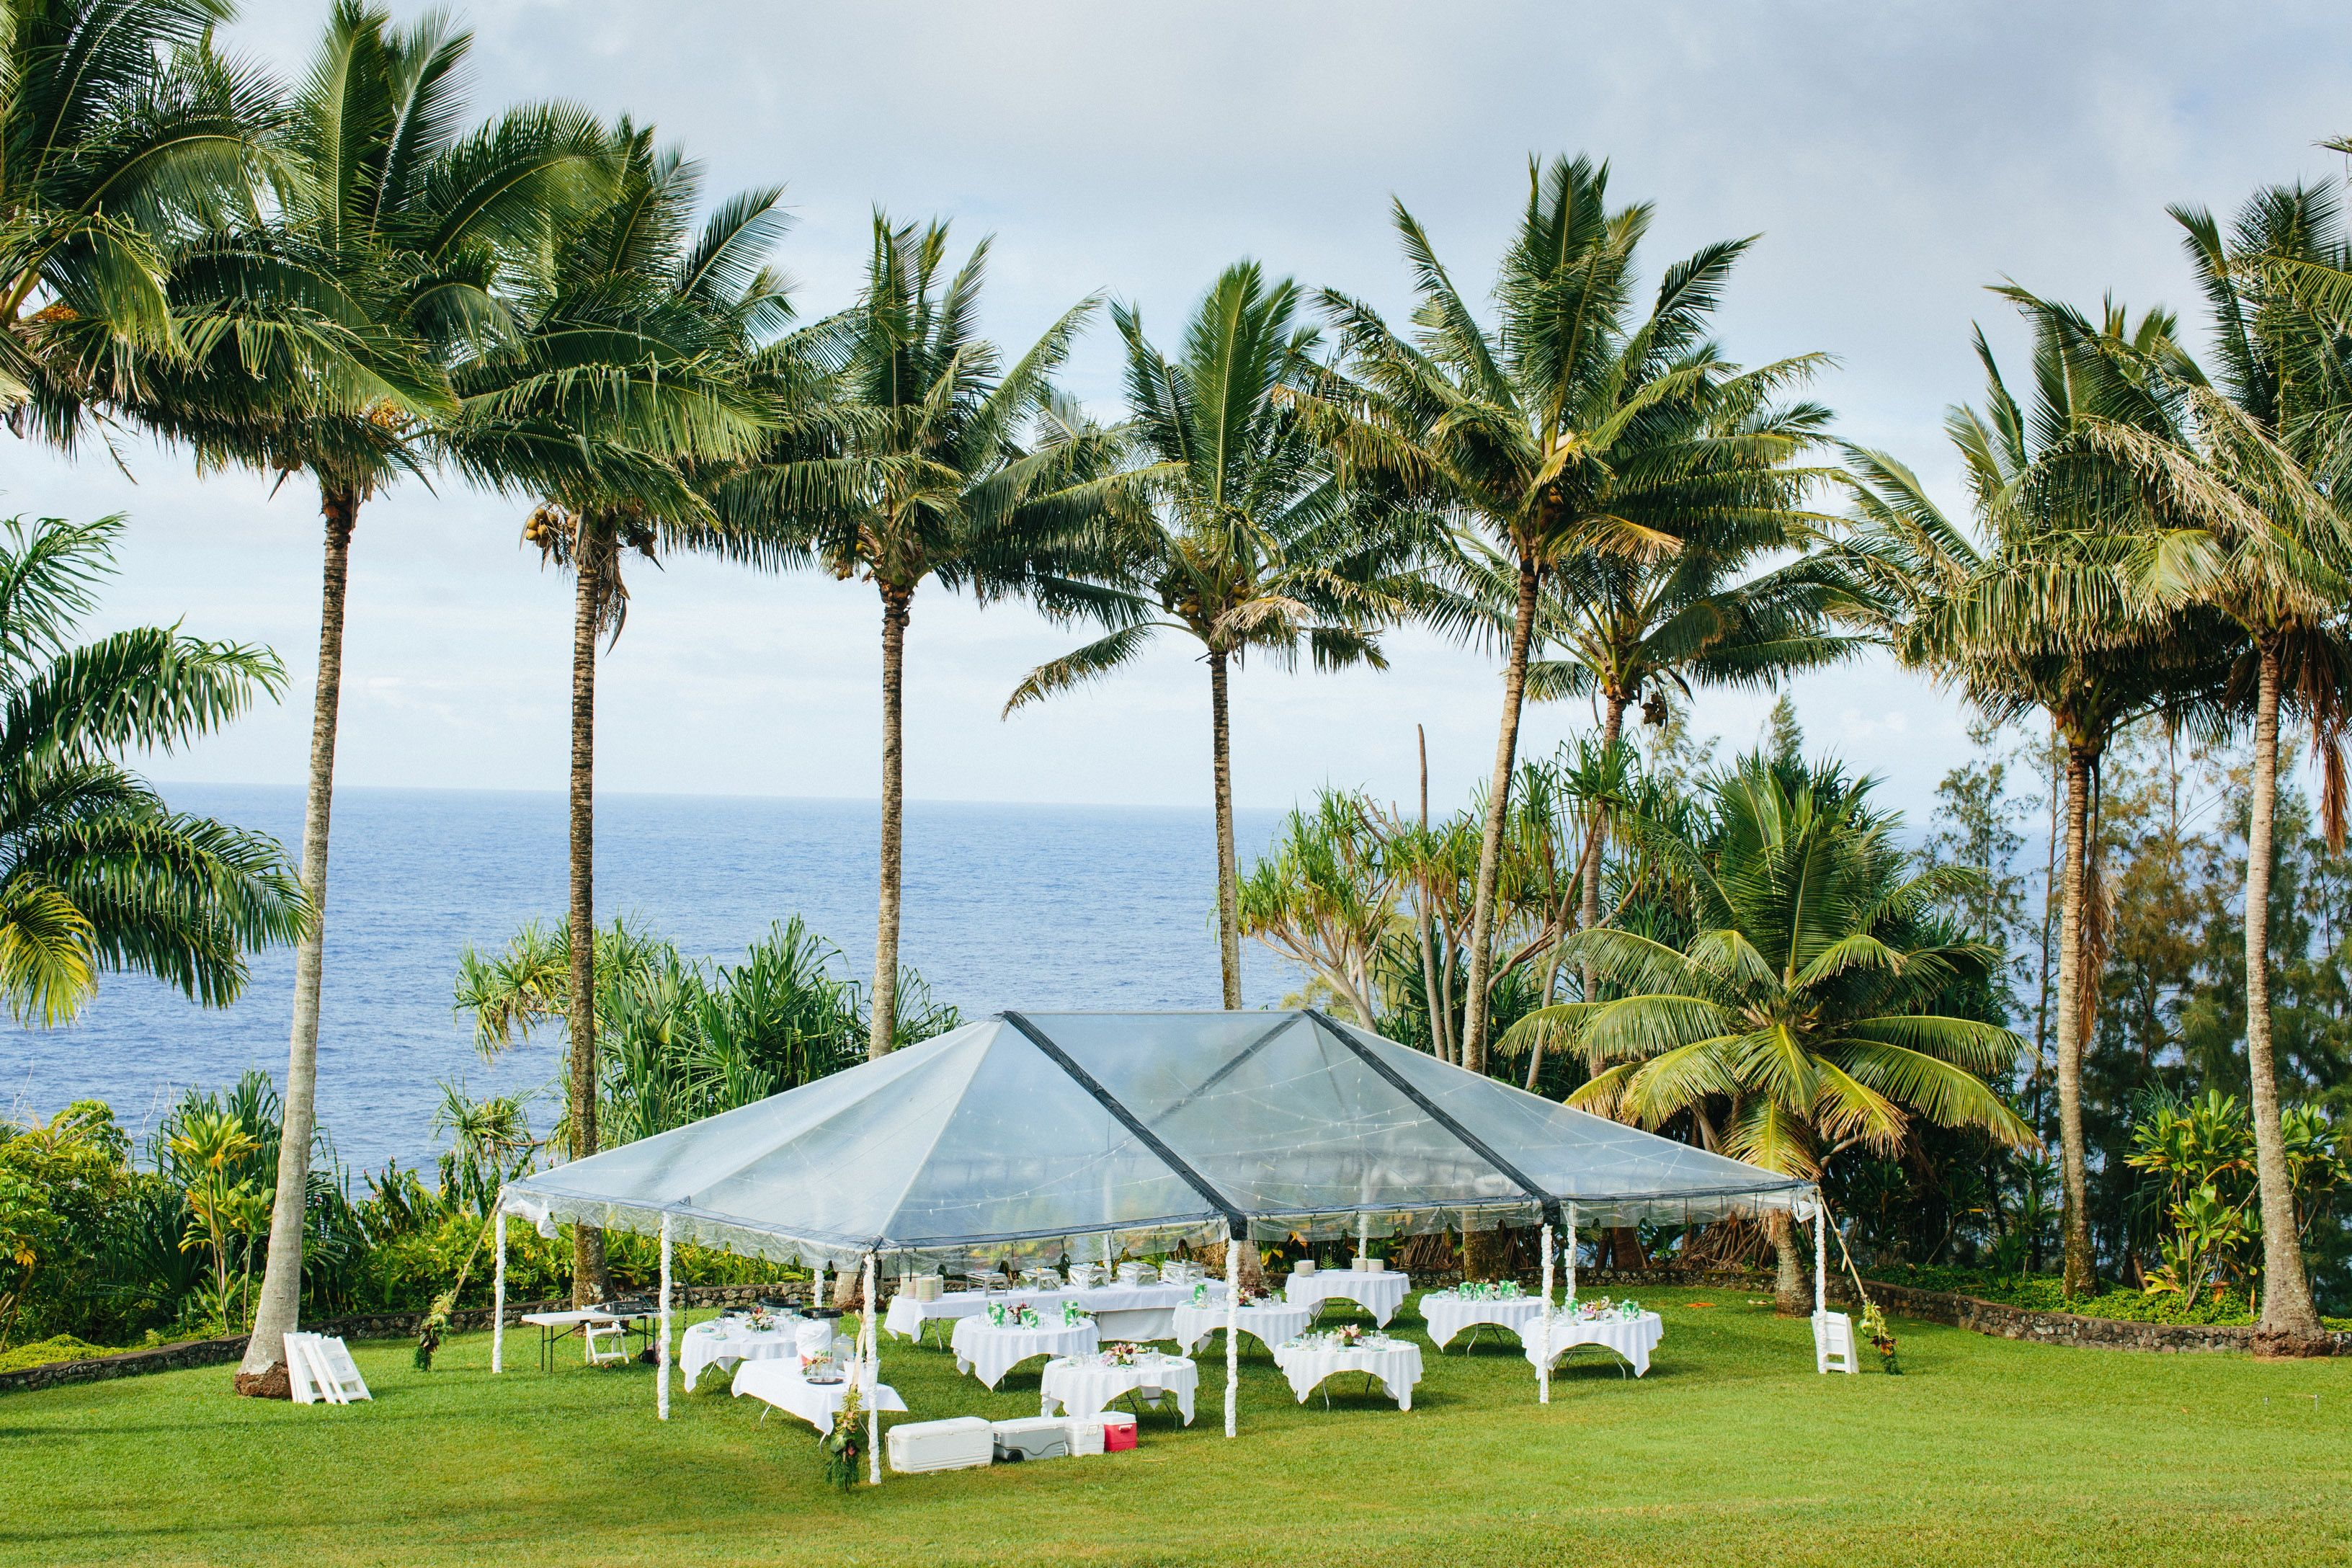 Drone photo of our clear tent for a wedding reception - Big Island Tents & Drone photo of our clear tent for a wedding reception - Big Island ...